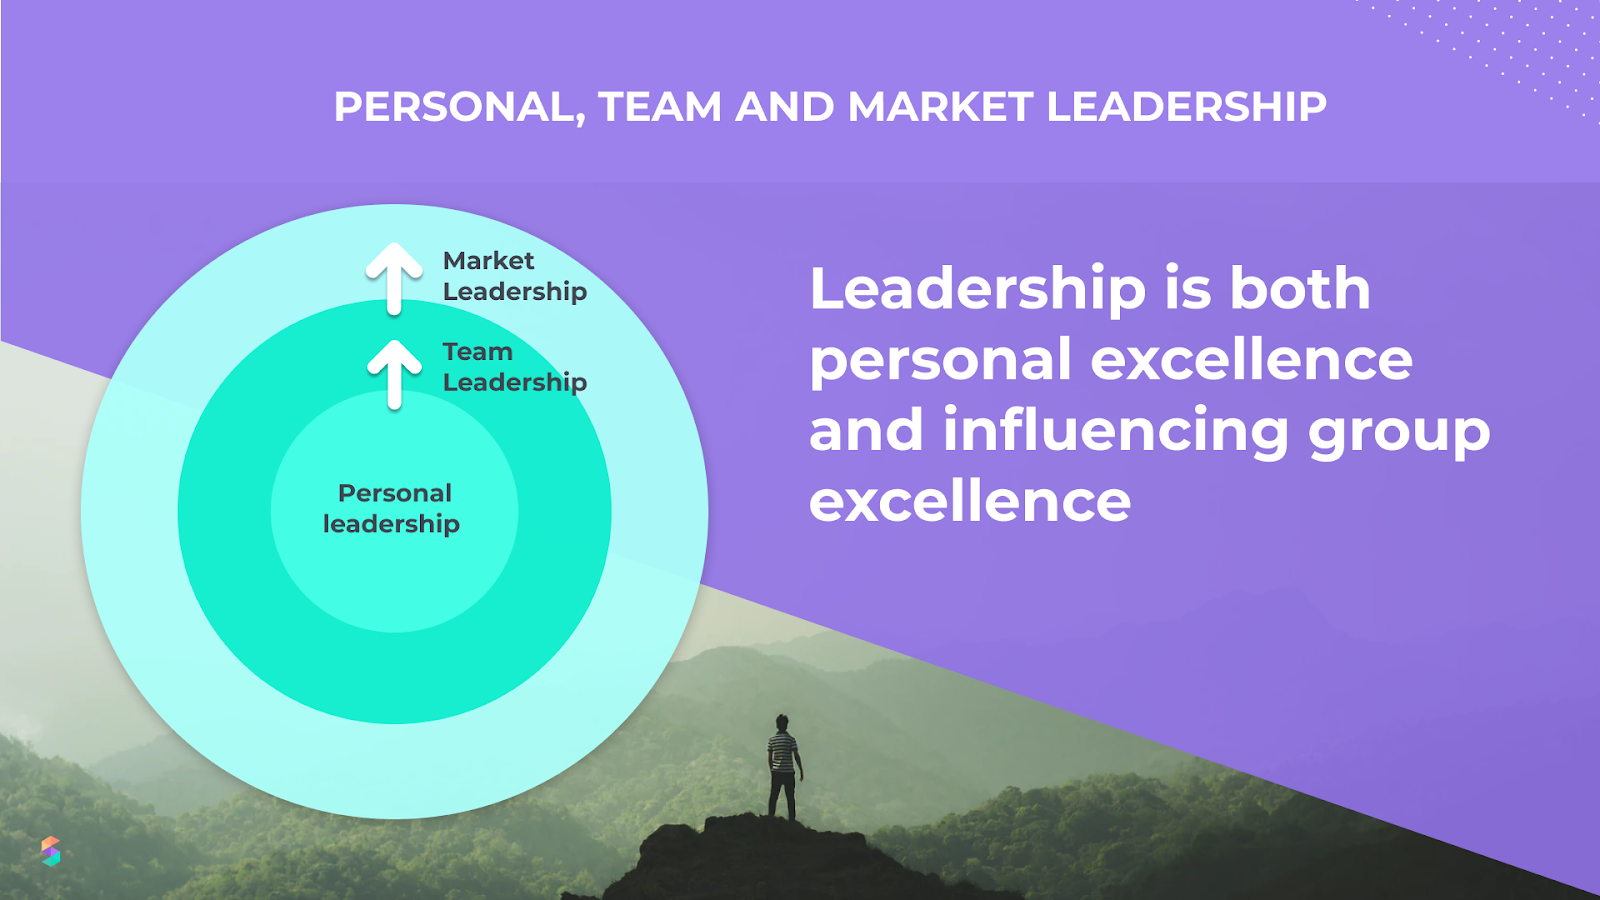 personal, team, and market leadership